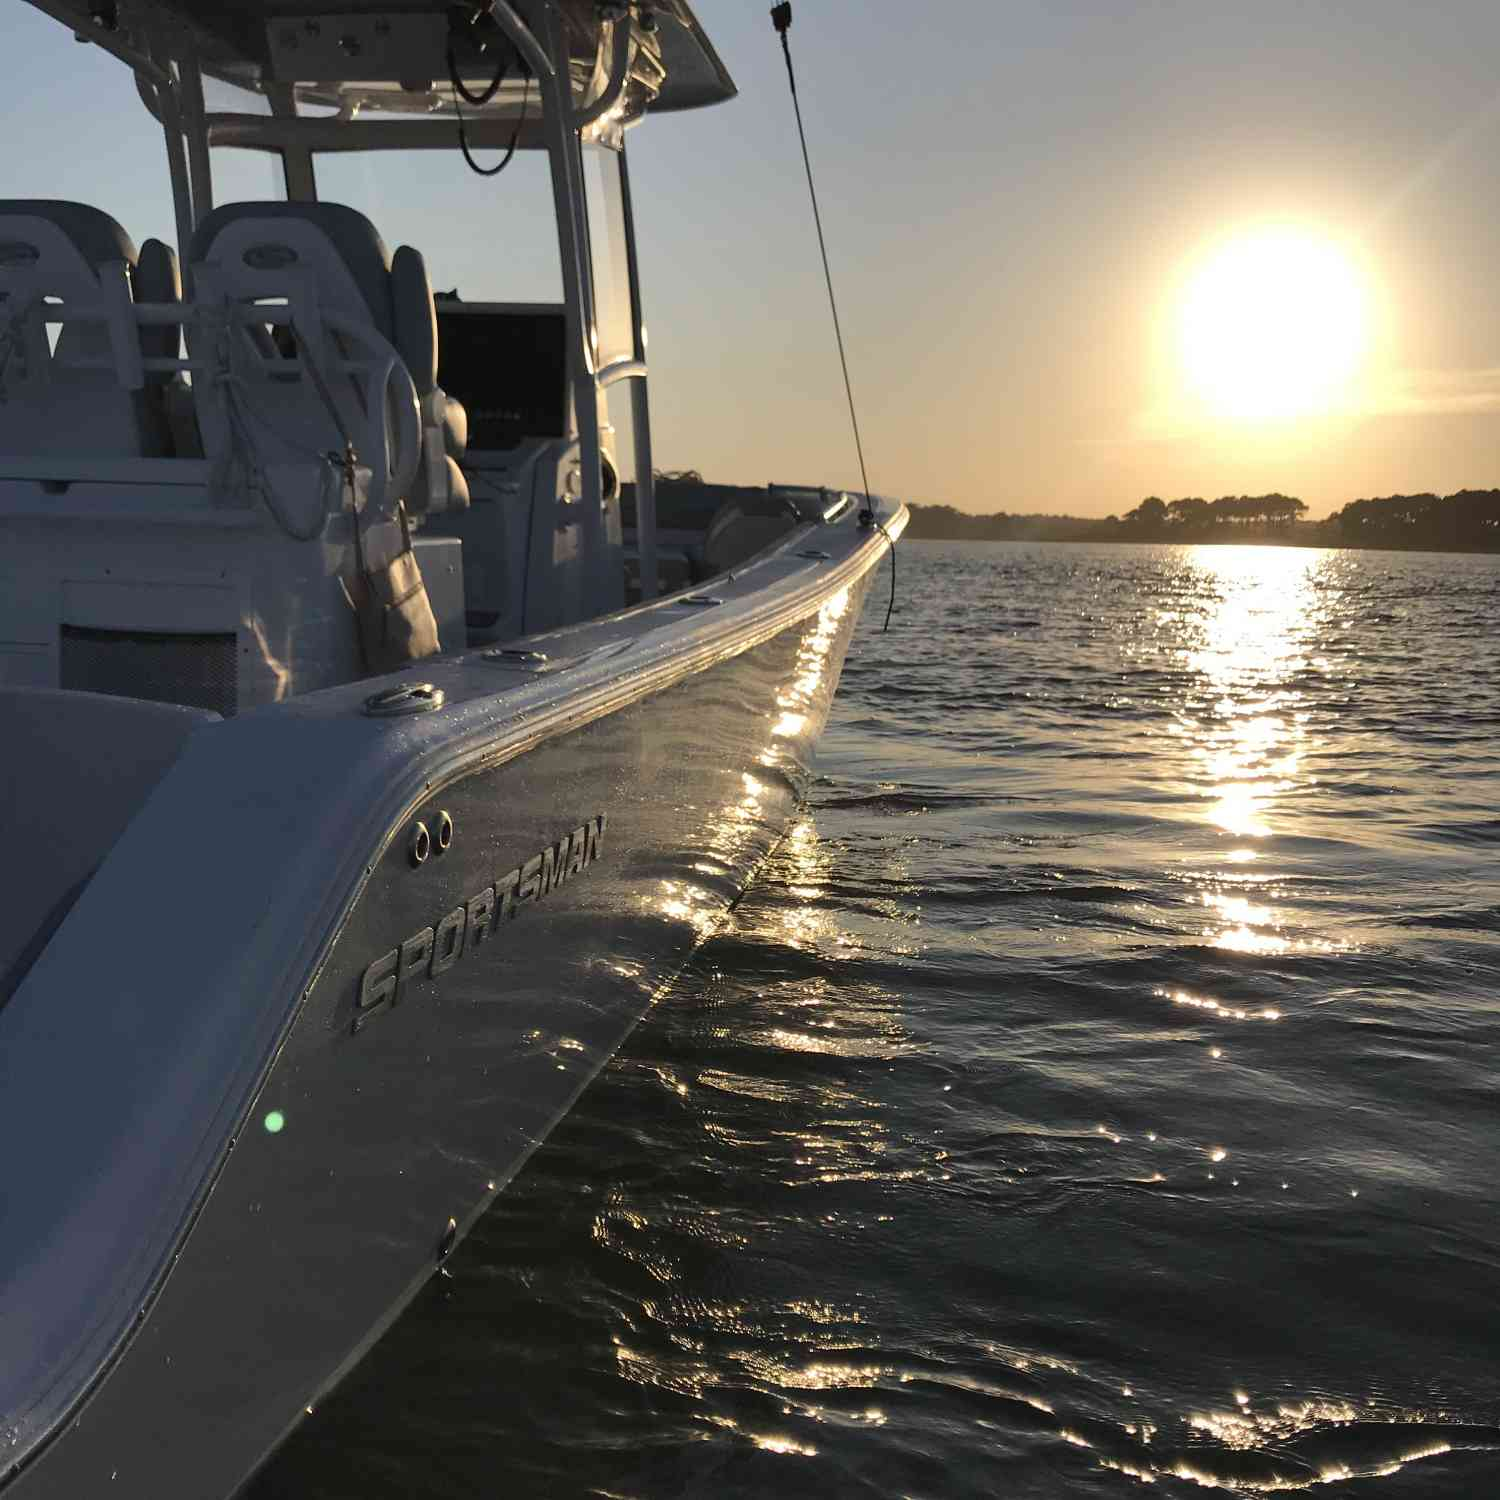 Title: A Sportsman Kind of Sunset - On board their Sportsman Open 282 Center Console - Location: Assateague Island, Maryland. Participating in the Photo Contest #SportsmanDecember2020